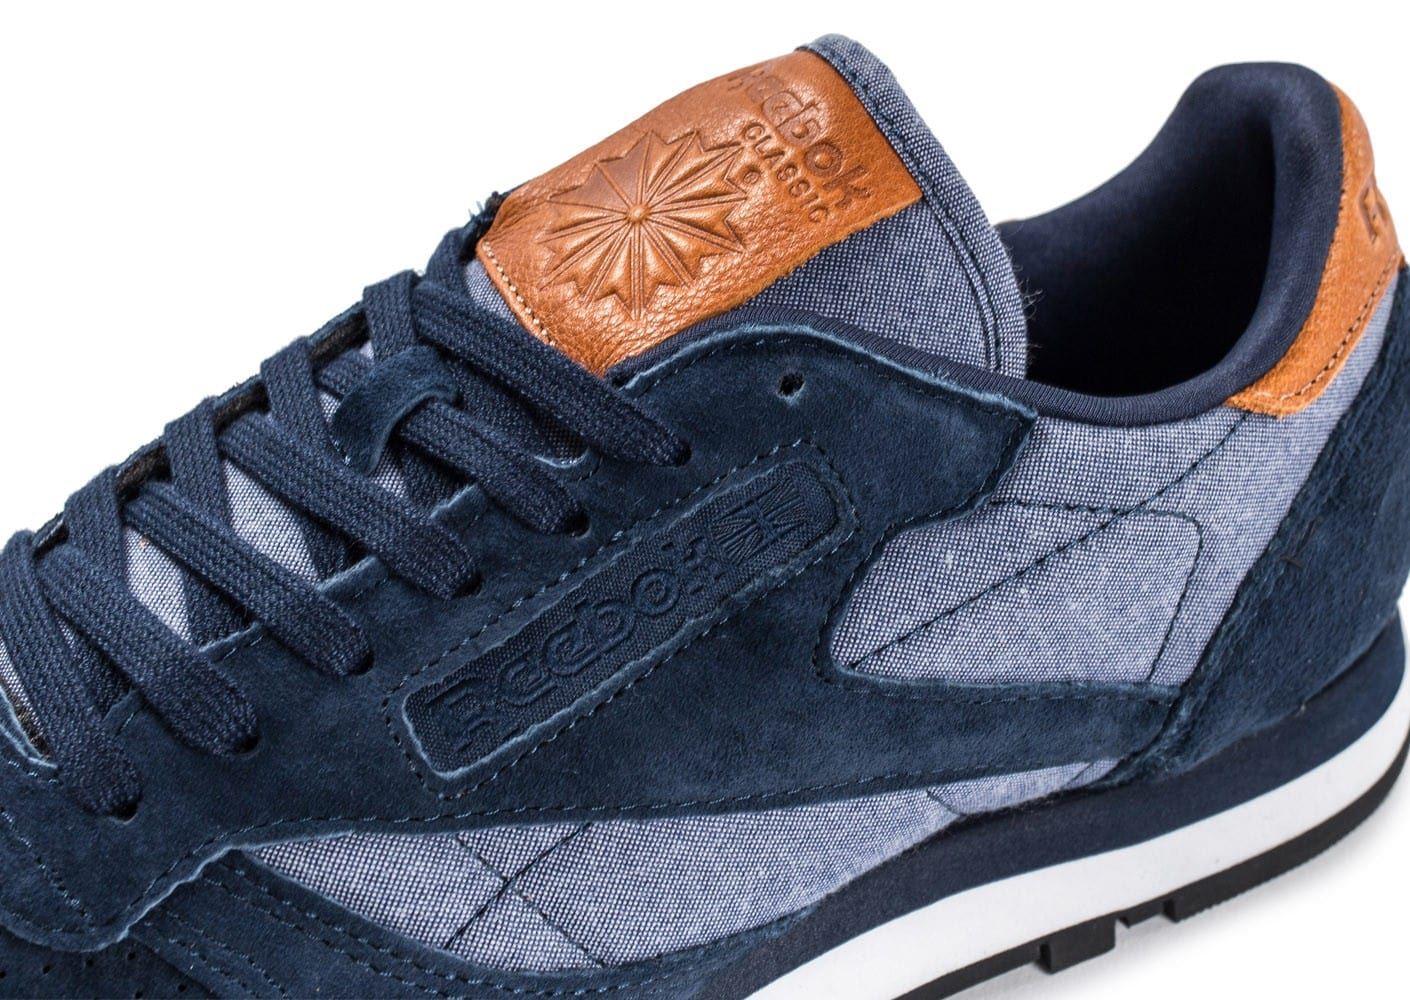 ec92ab8a94c9f ... Chaussures Reebok Classic Leather Chambray bleu marine vue dessus